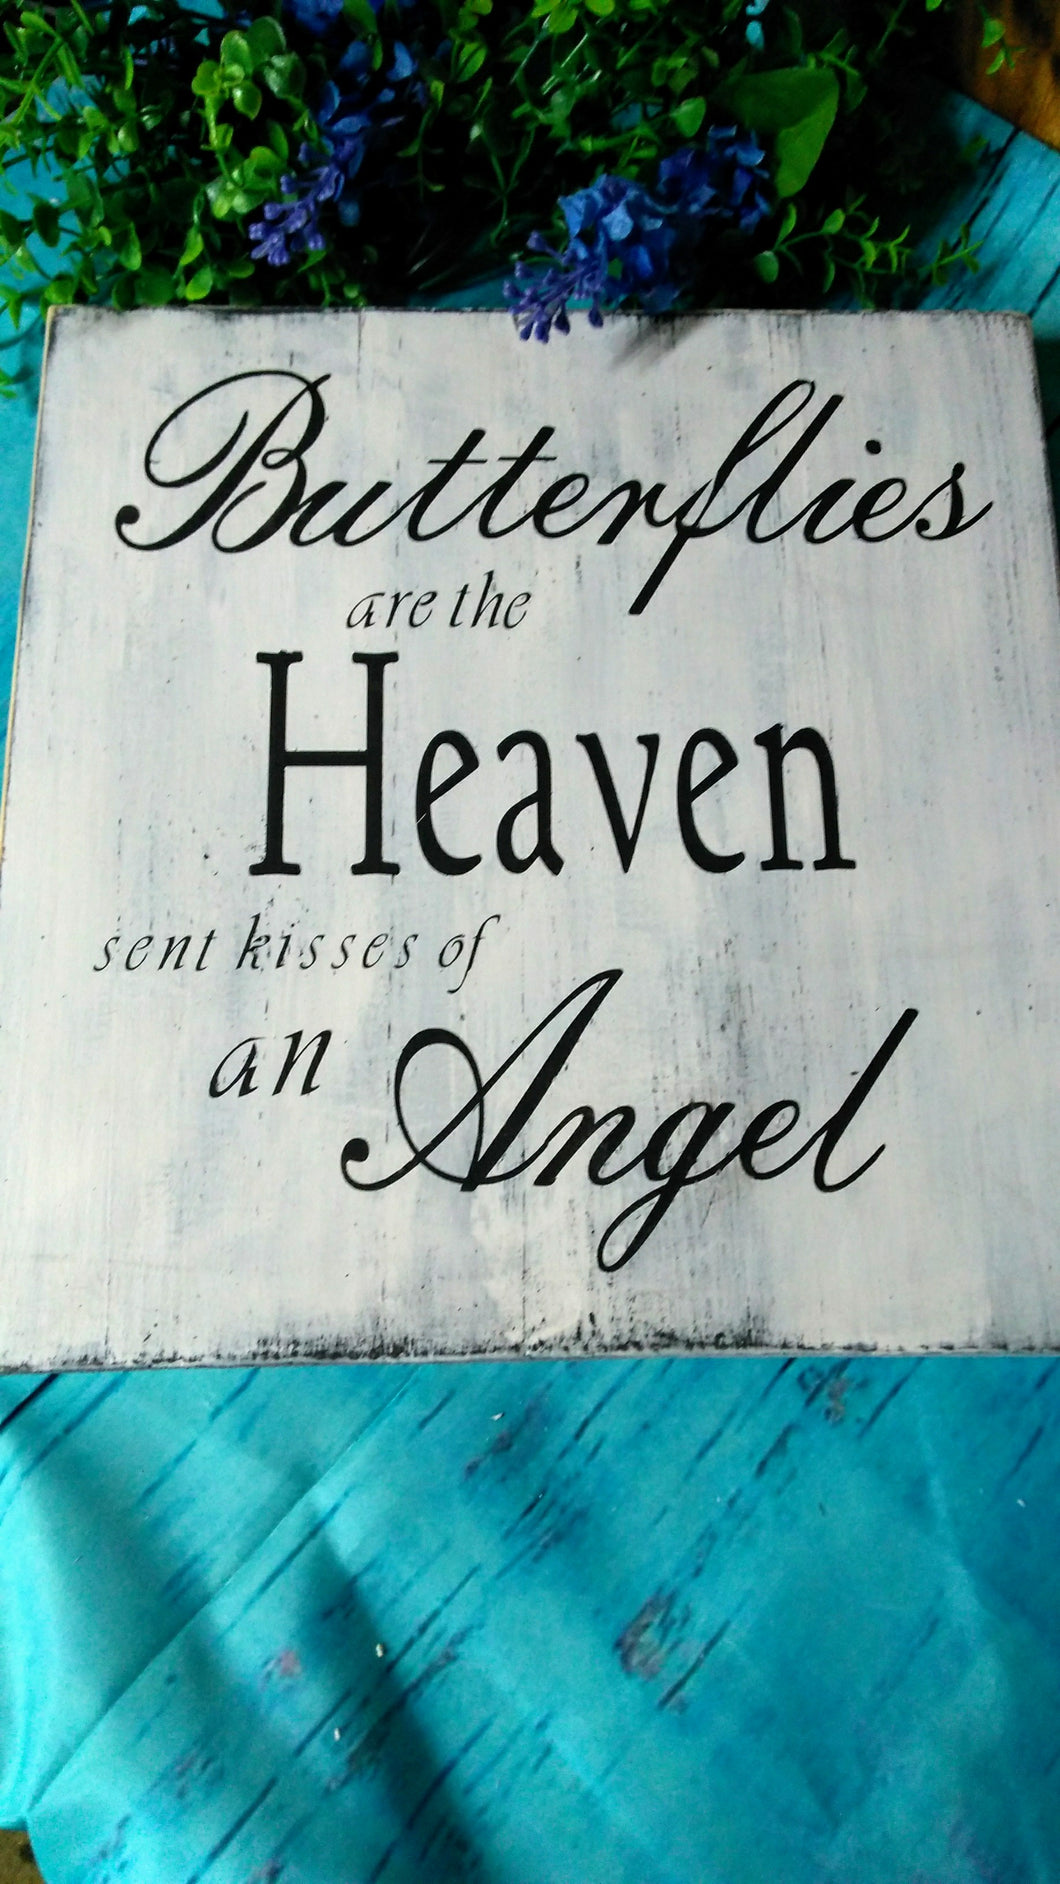 Butterflies are Heaven Sent Kisses Hand painted Rustic Sign